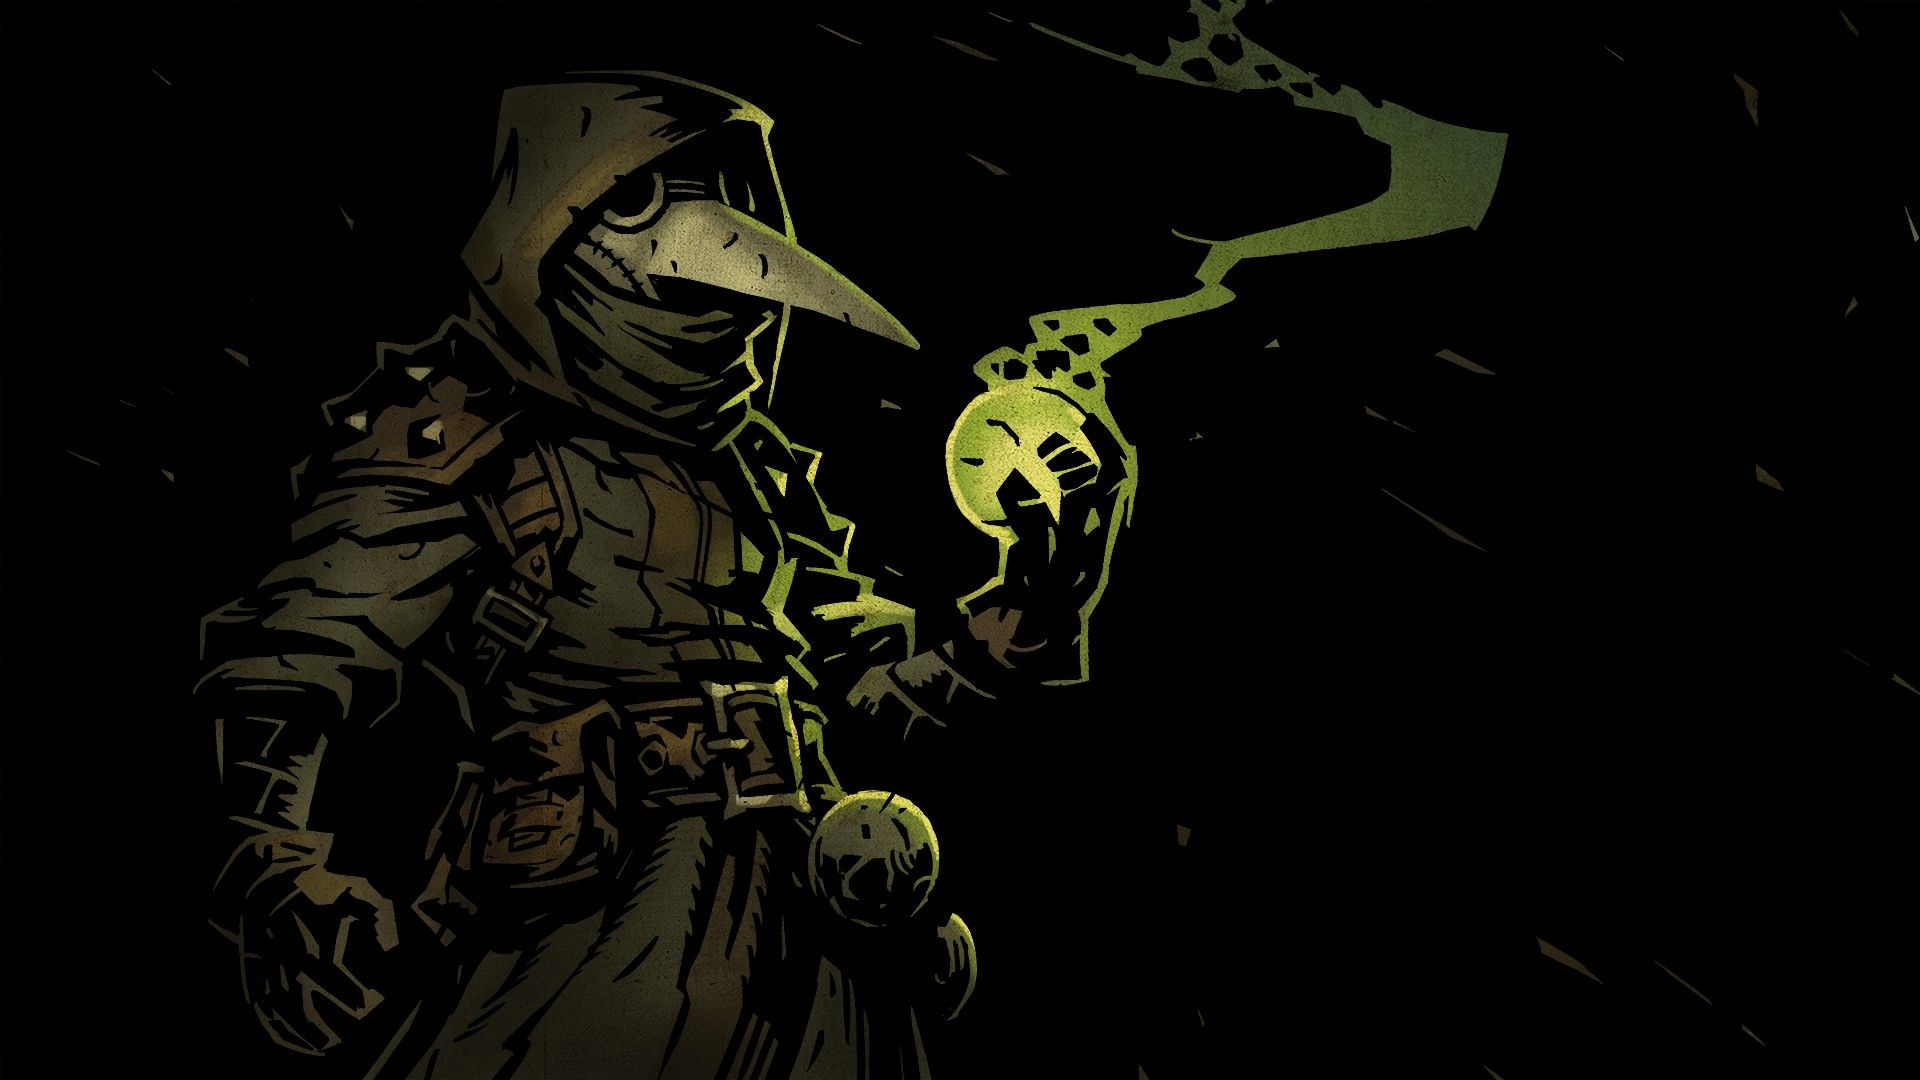 Darkest Dungeon Decorative Urn Captivating Video Games Are Tackling Mental Health With Mixed Results  Mental Inspiration